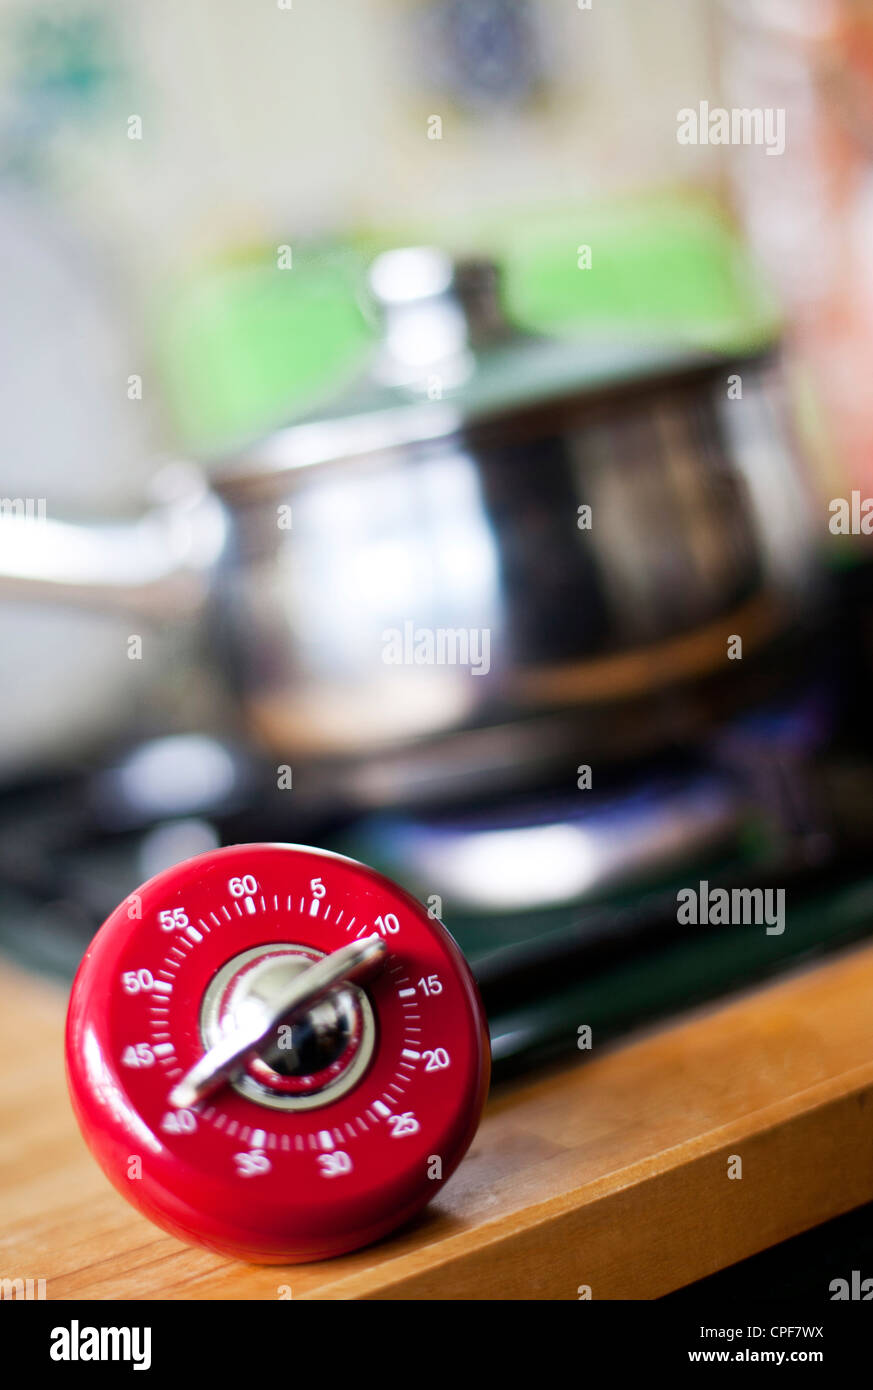 A cooking timer, London, England, UK - Stock Image